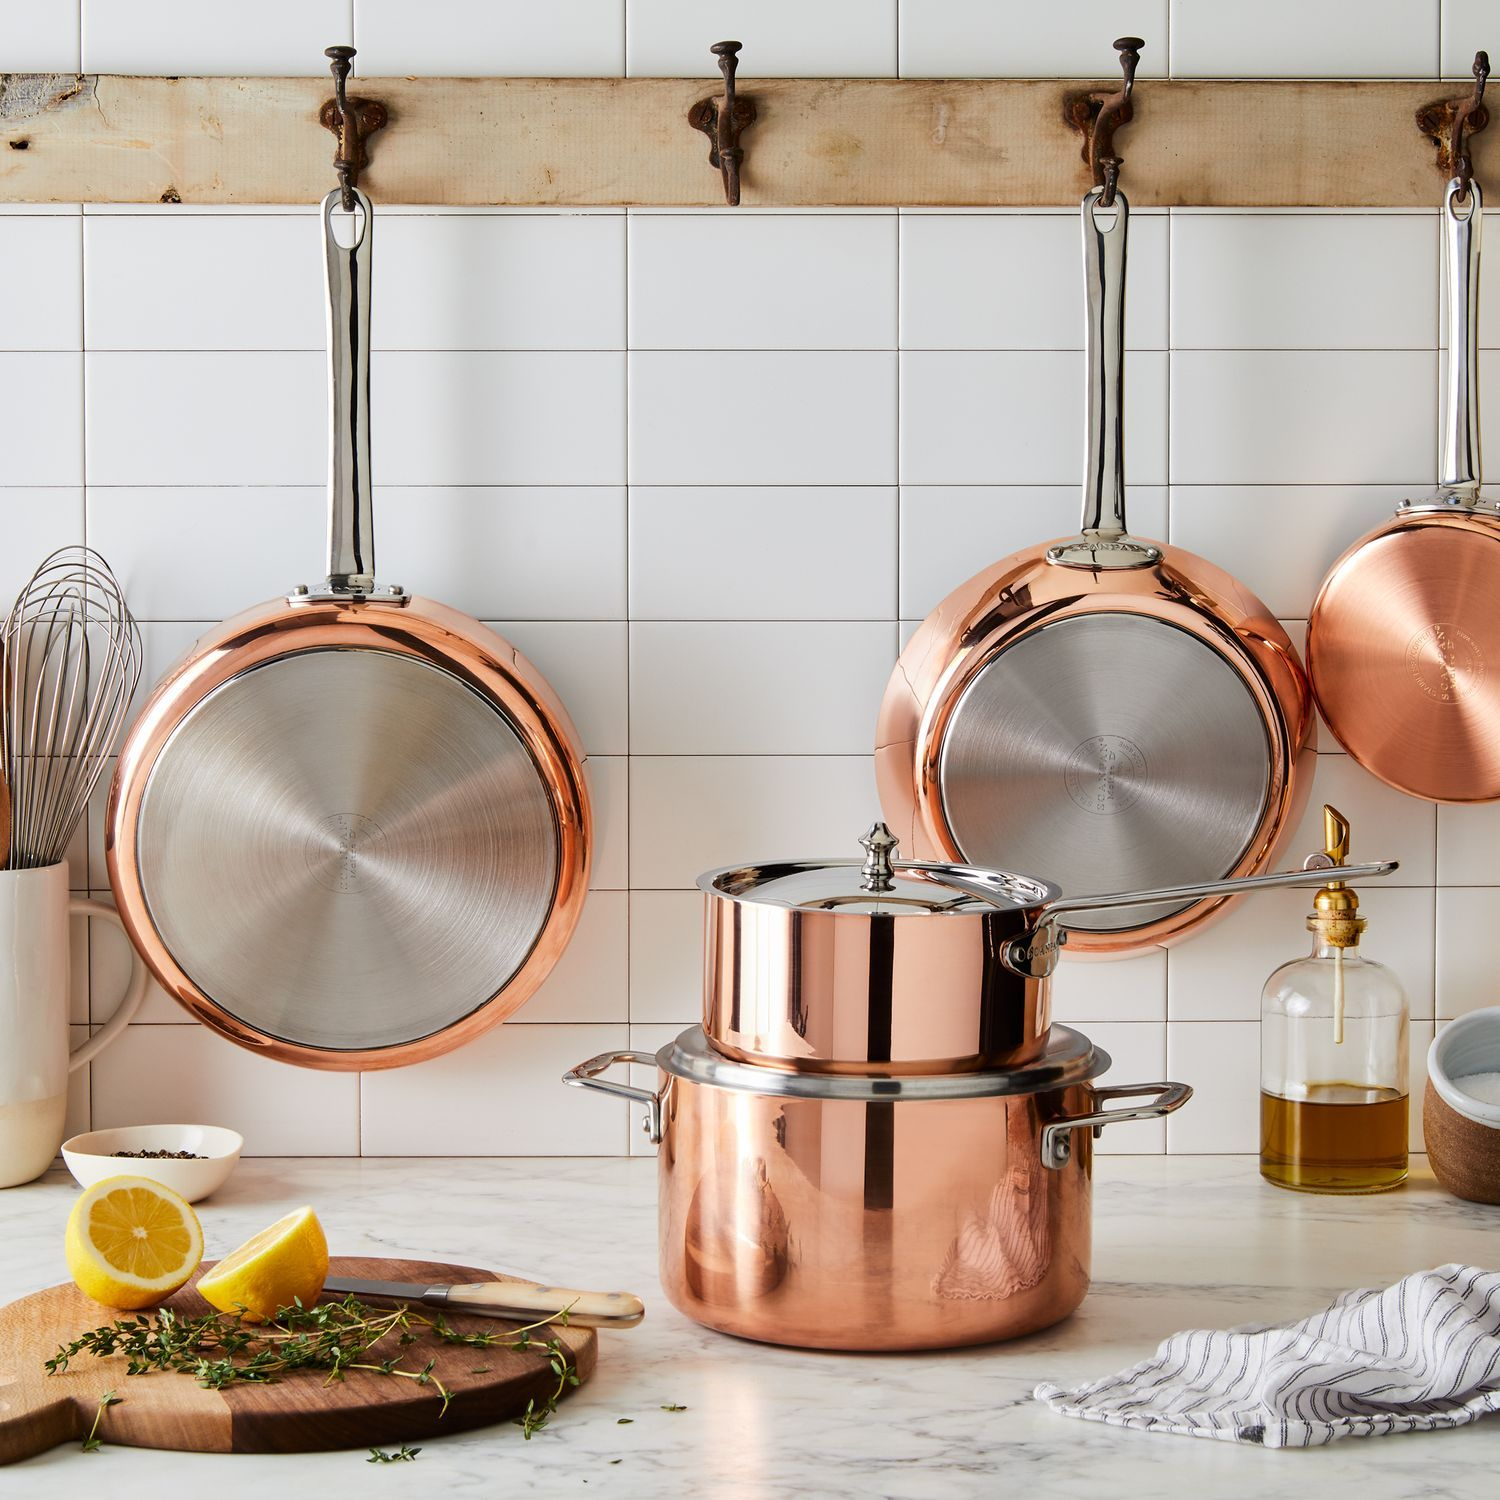 Scanpan Maitre D Copper Cookware Collection On Food52 With